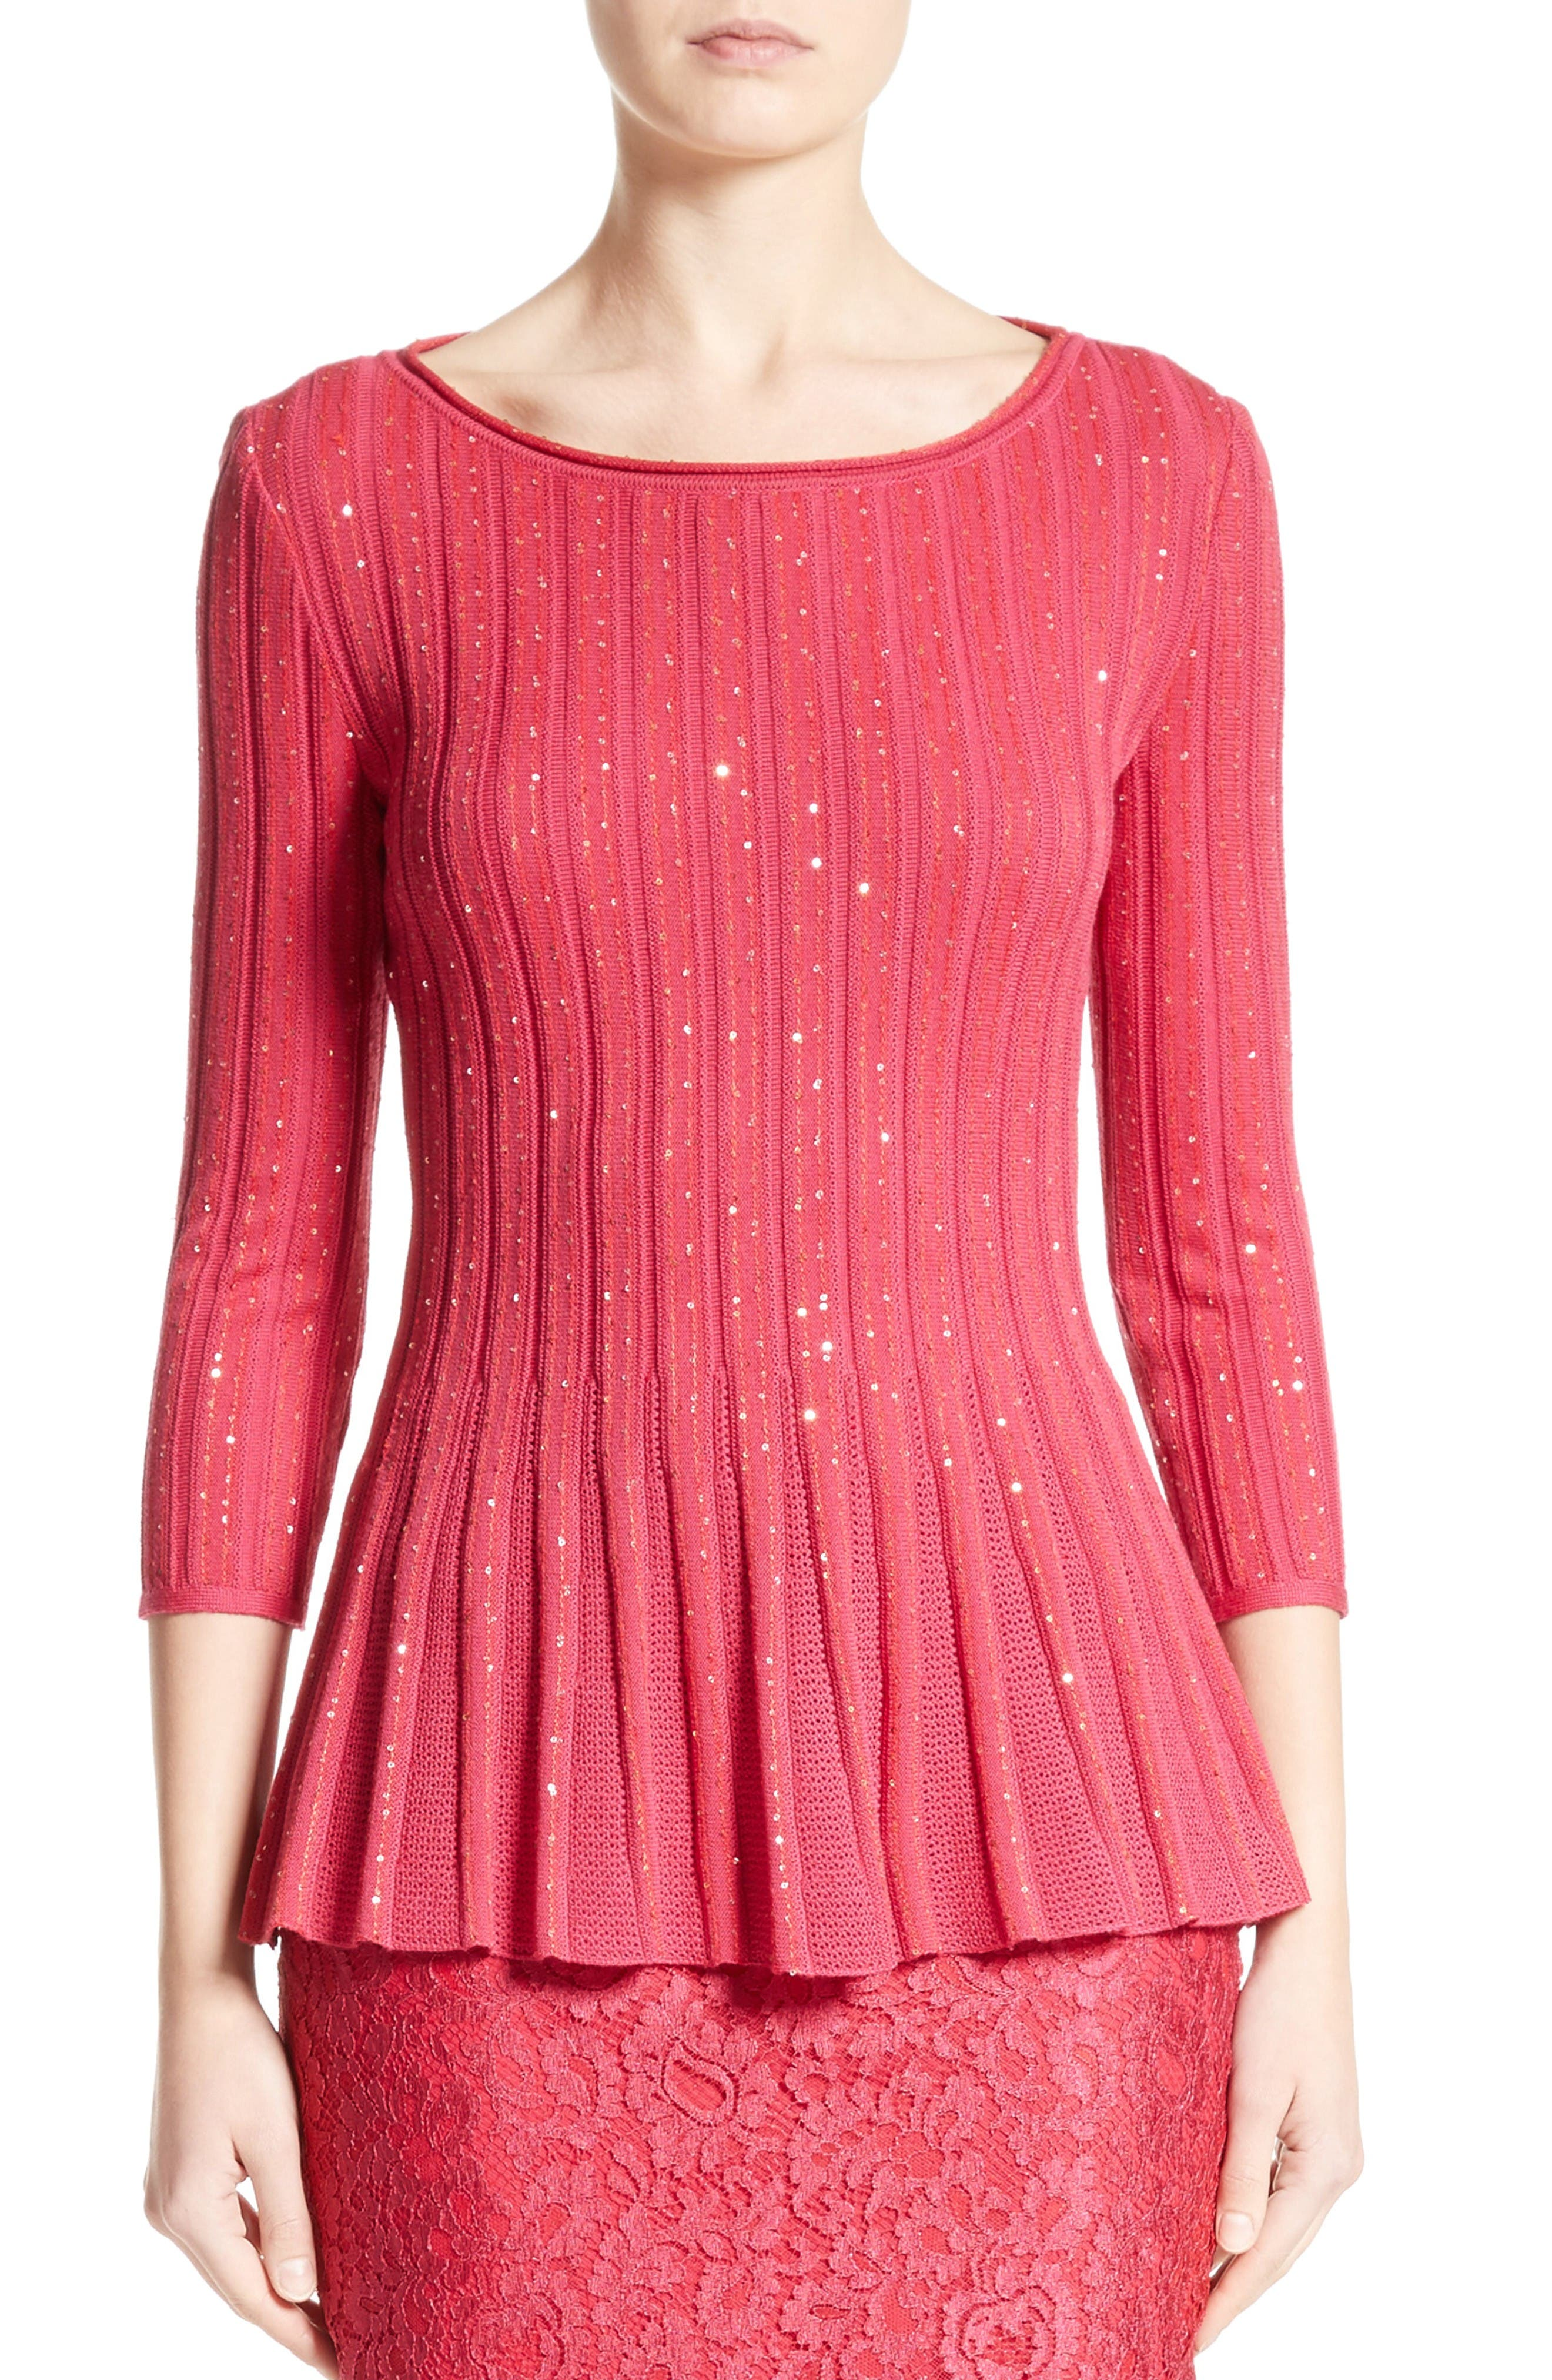 Alternate Image 1 Selected - St. John Collection Chriag Sequin Knit Peplum Top